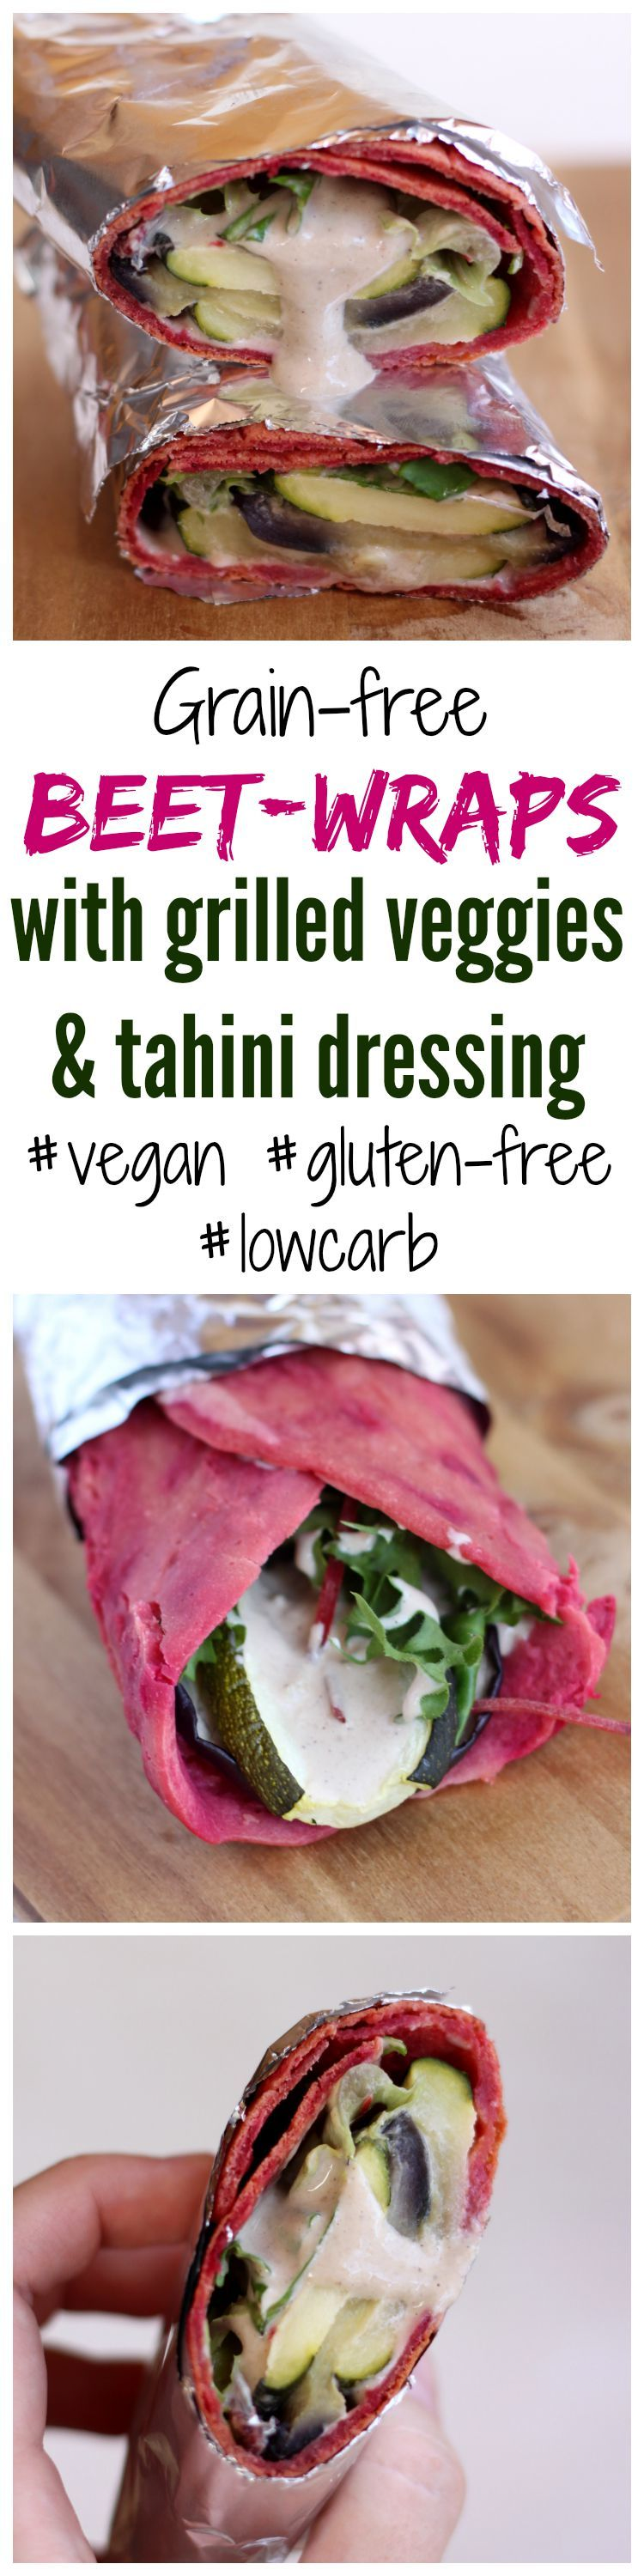 #Grainfree beet wraps w/ grilled veggies & tahini dressing - #vegan, #glutenfree, #lowcarb #recipe |ingeniouscooking.com